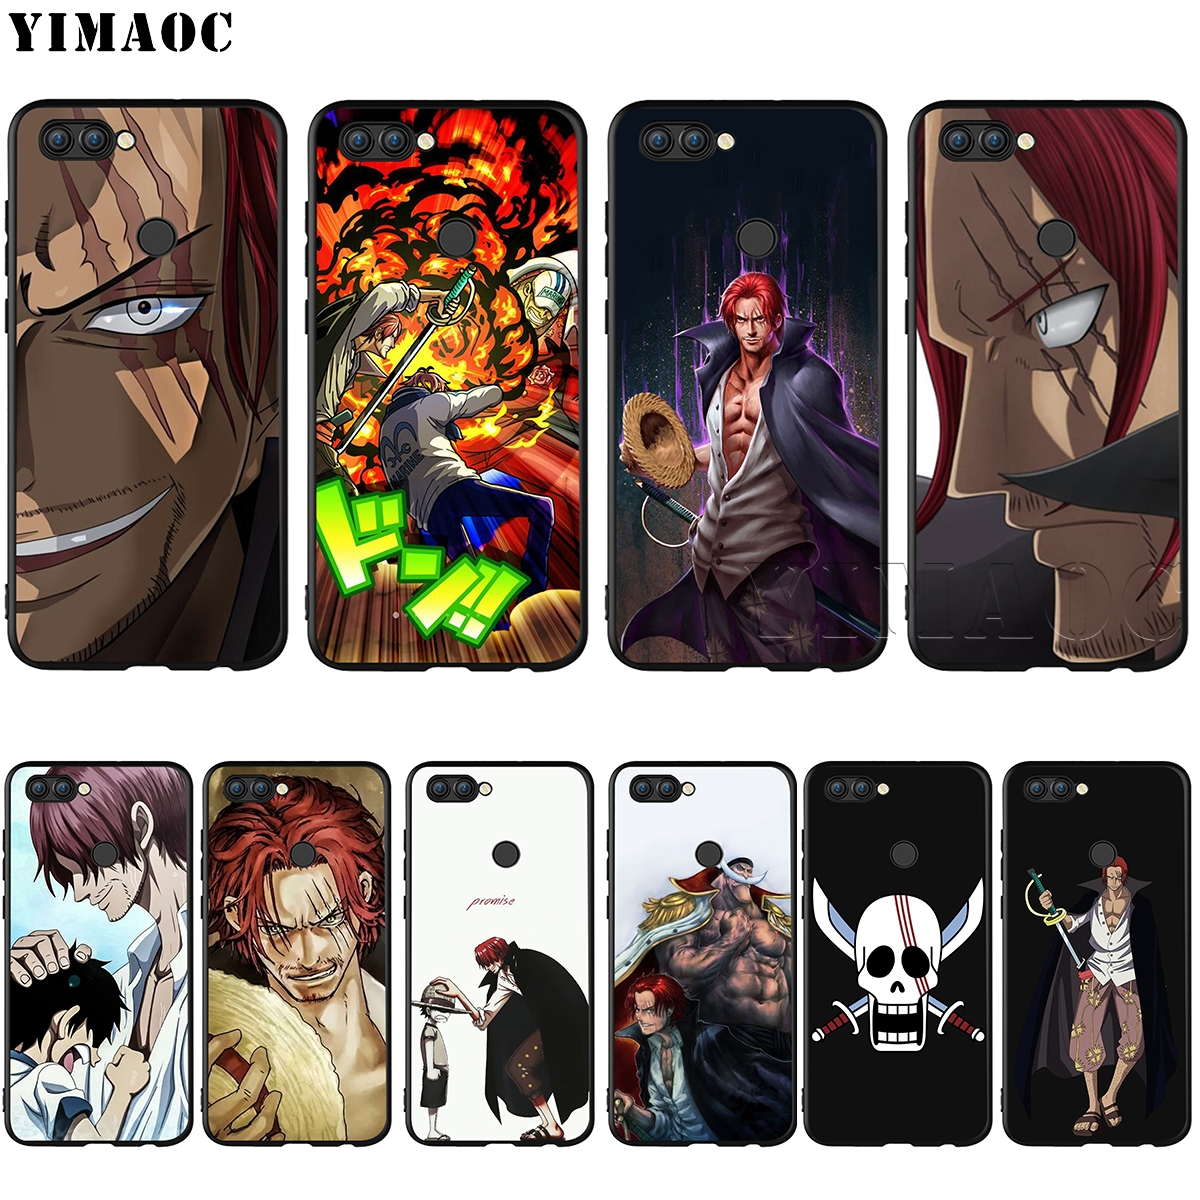 Phone Bags & Cases Cellphones & Telecommunications Japanese Manga One Piece Soft Tpu Silicone Phone Cover Case For Huawei Y6 Prime 2017 2018 Honor 6a 7a 7c 7x 8 8x 9 10 Lite